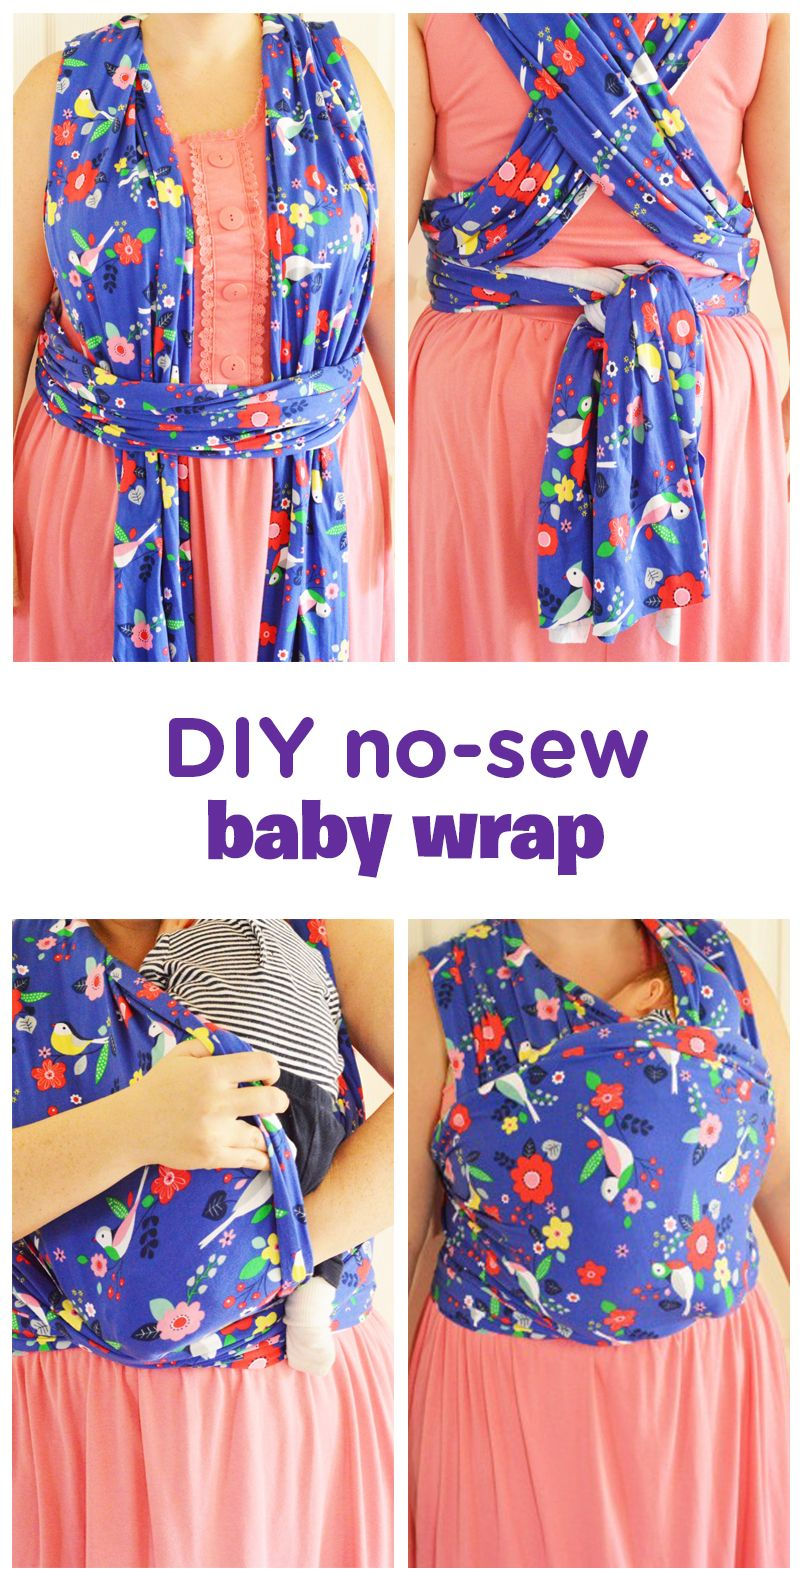 How To Make Your Own No Sew Moby Wrap Darn Good Diys Pinterest